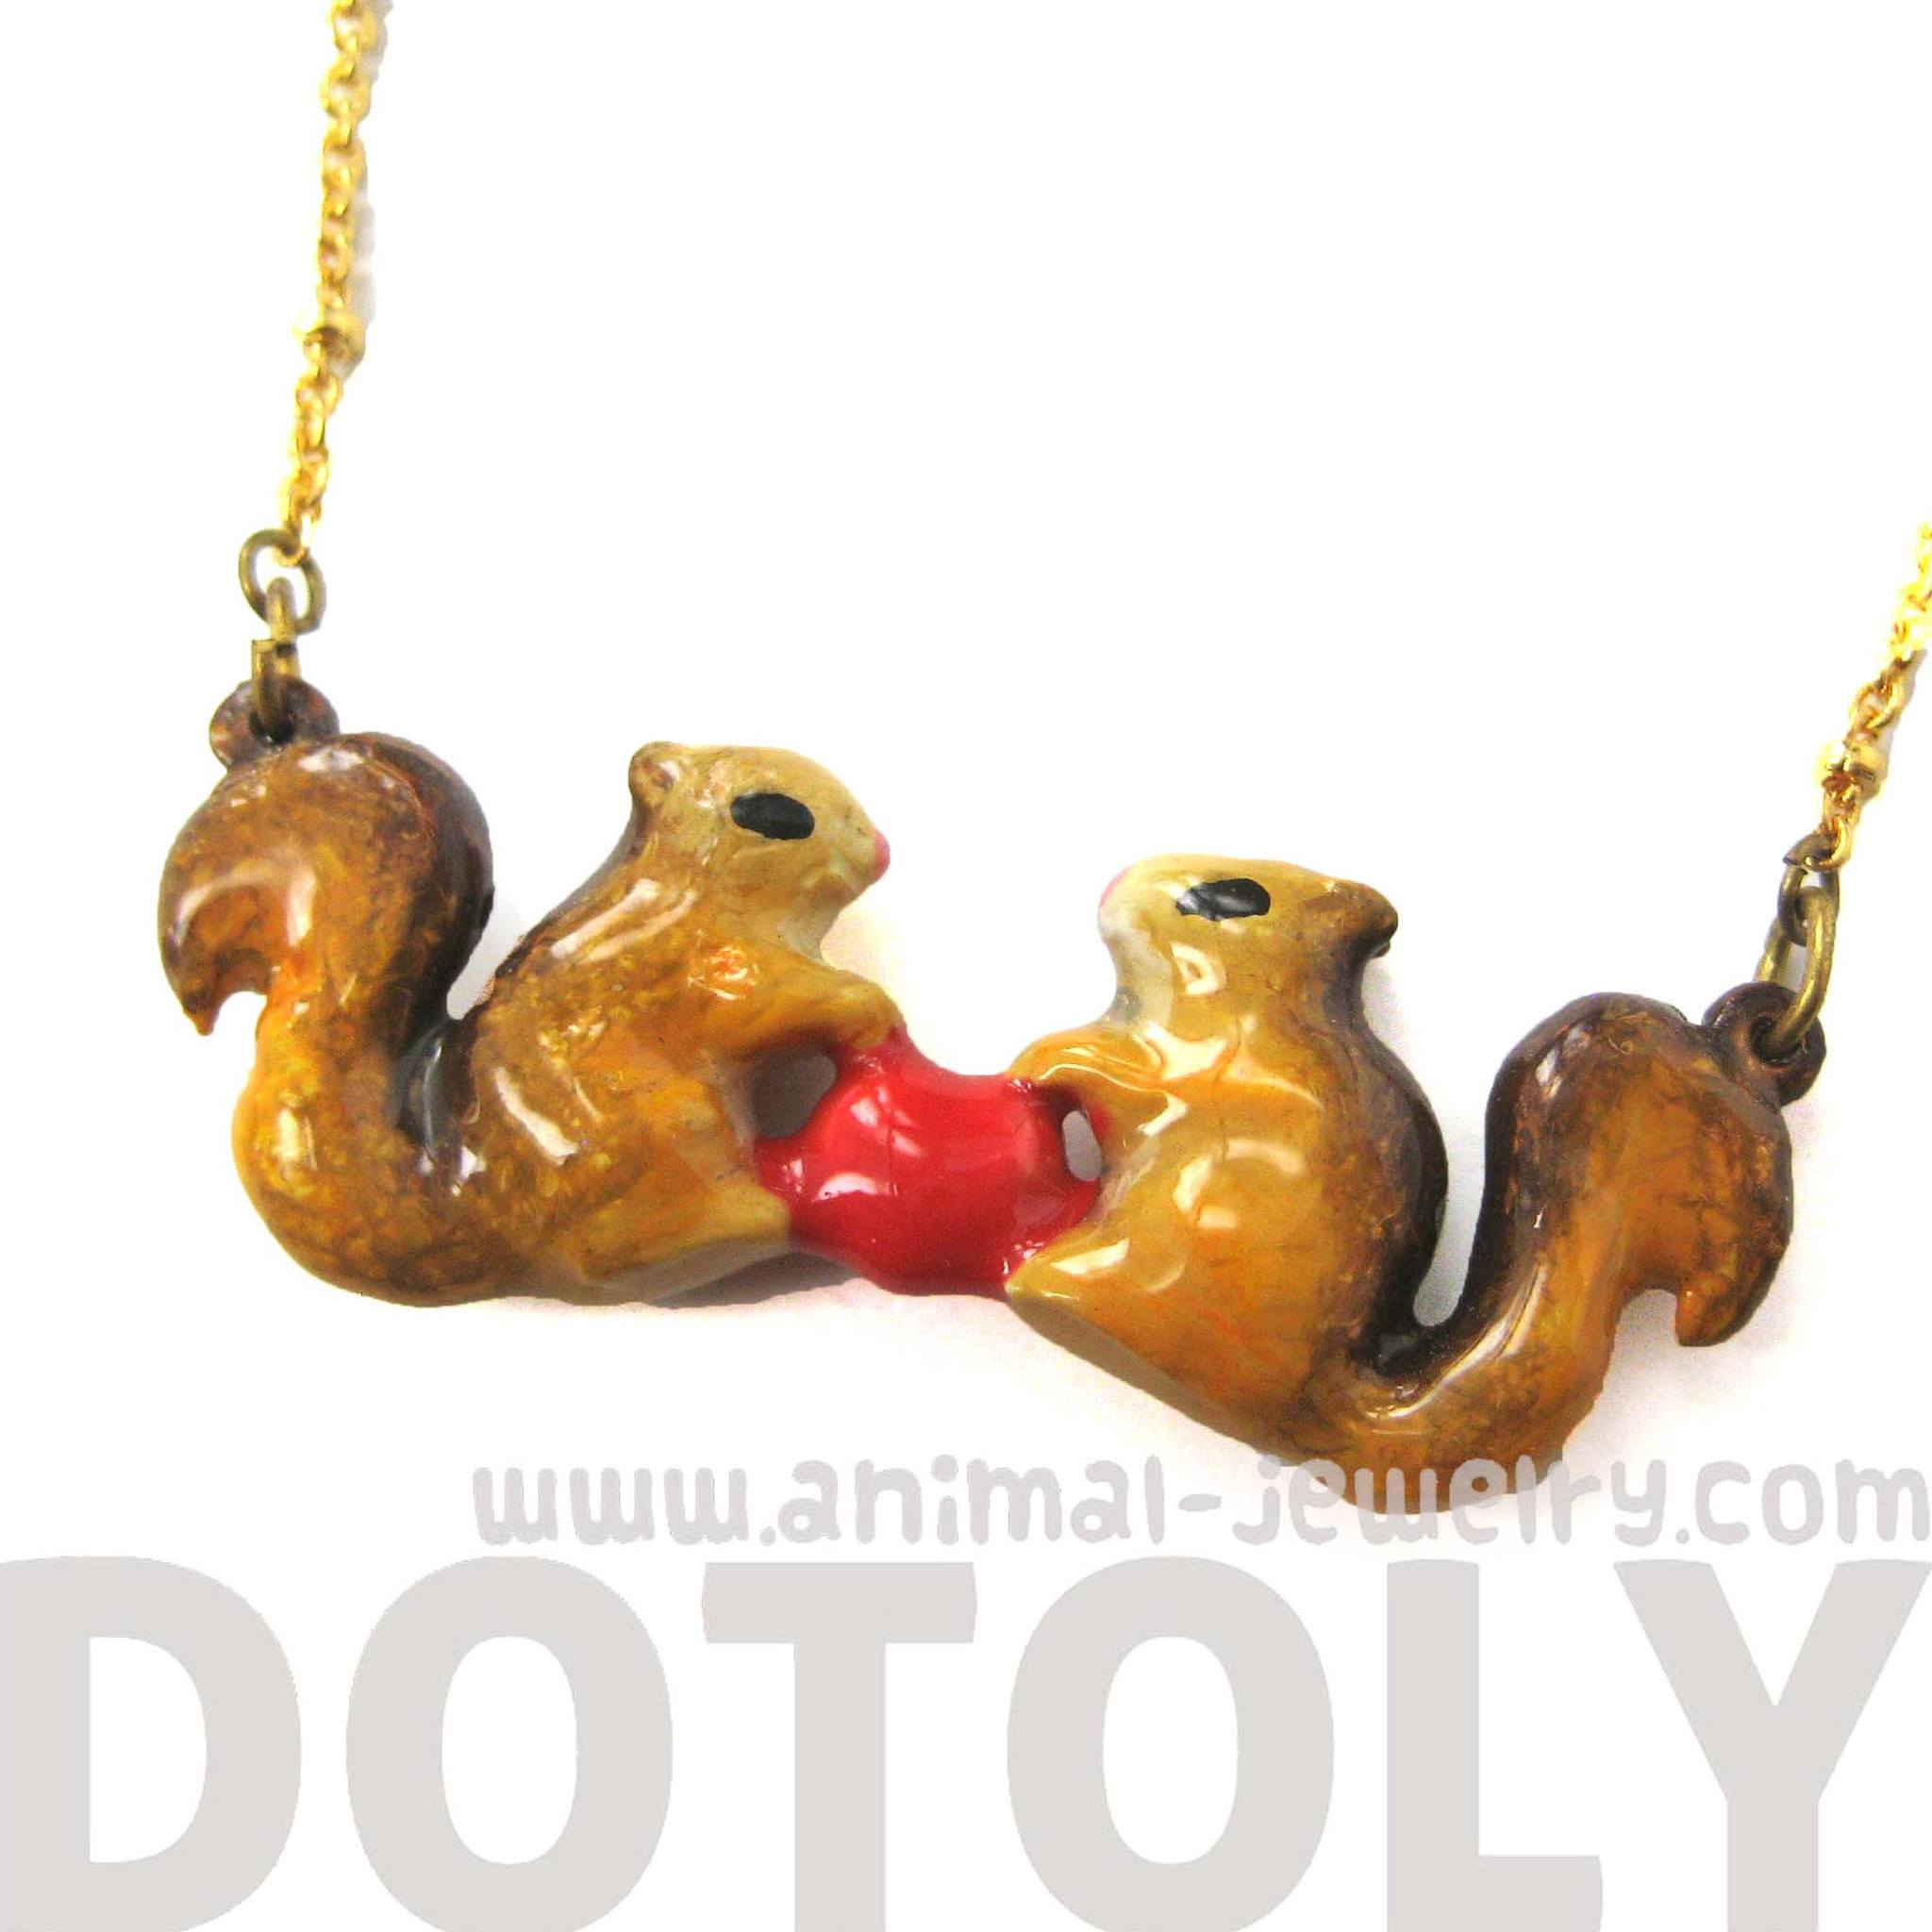 chipmunk-squirrel-heart-shaped-animal-enamel-pendant-necklace-limited-edition